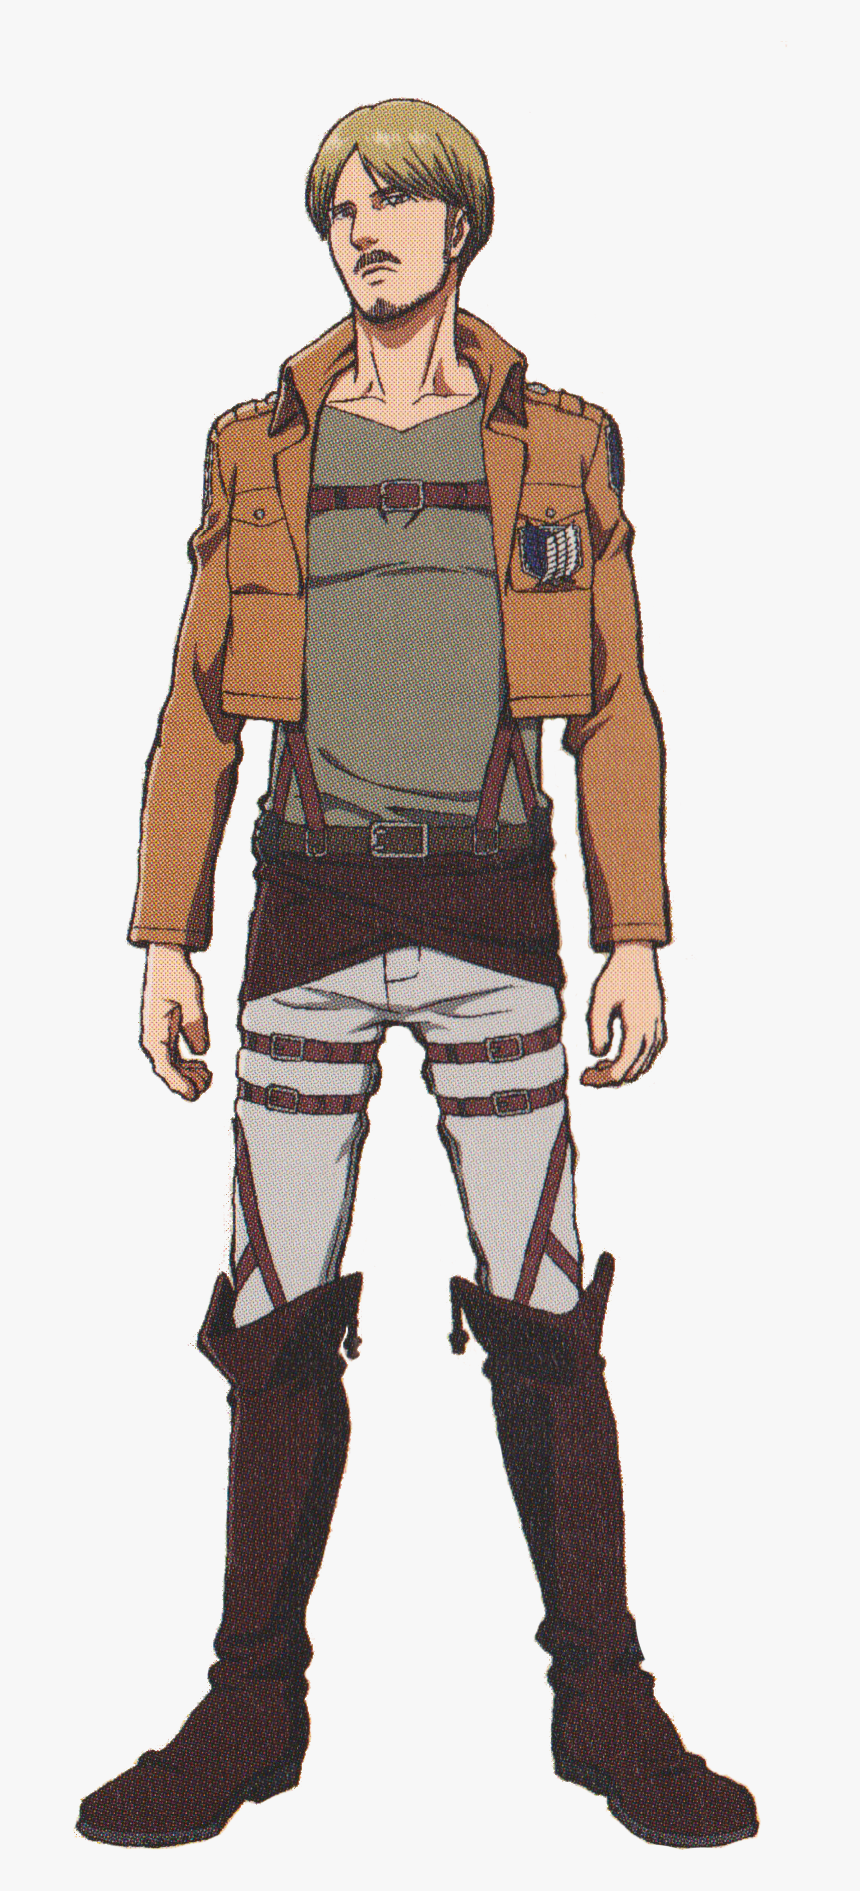 Attack On Titan Wiki Mike Attack On Titan Png Transparent Png Kindpng